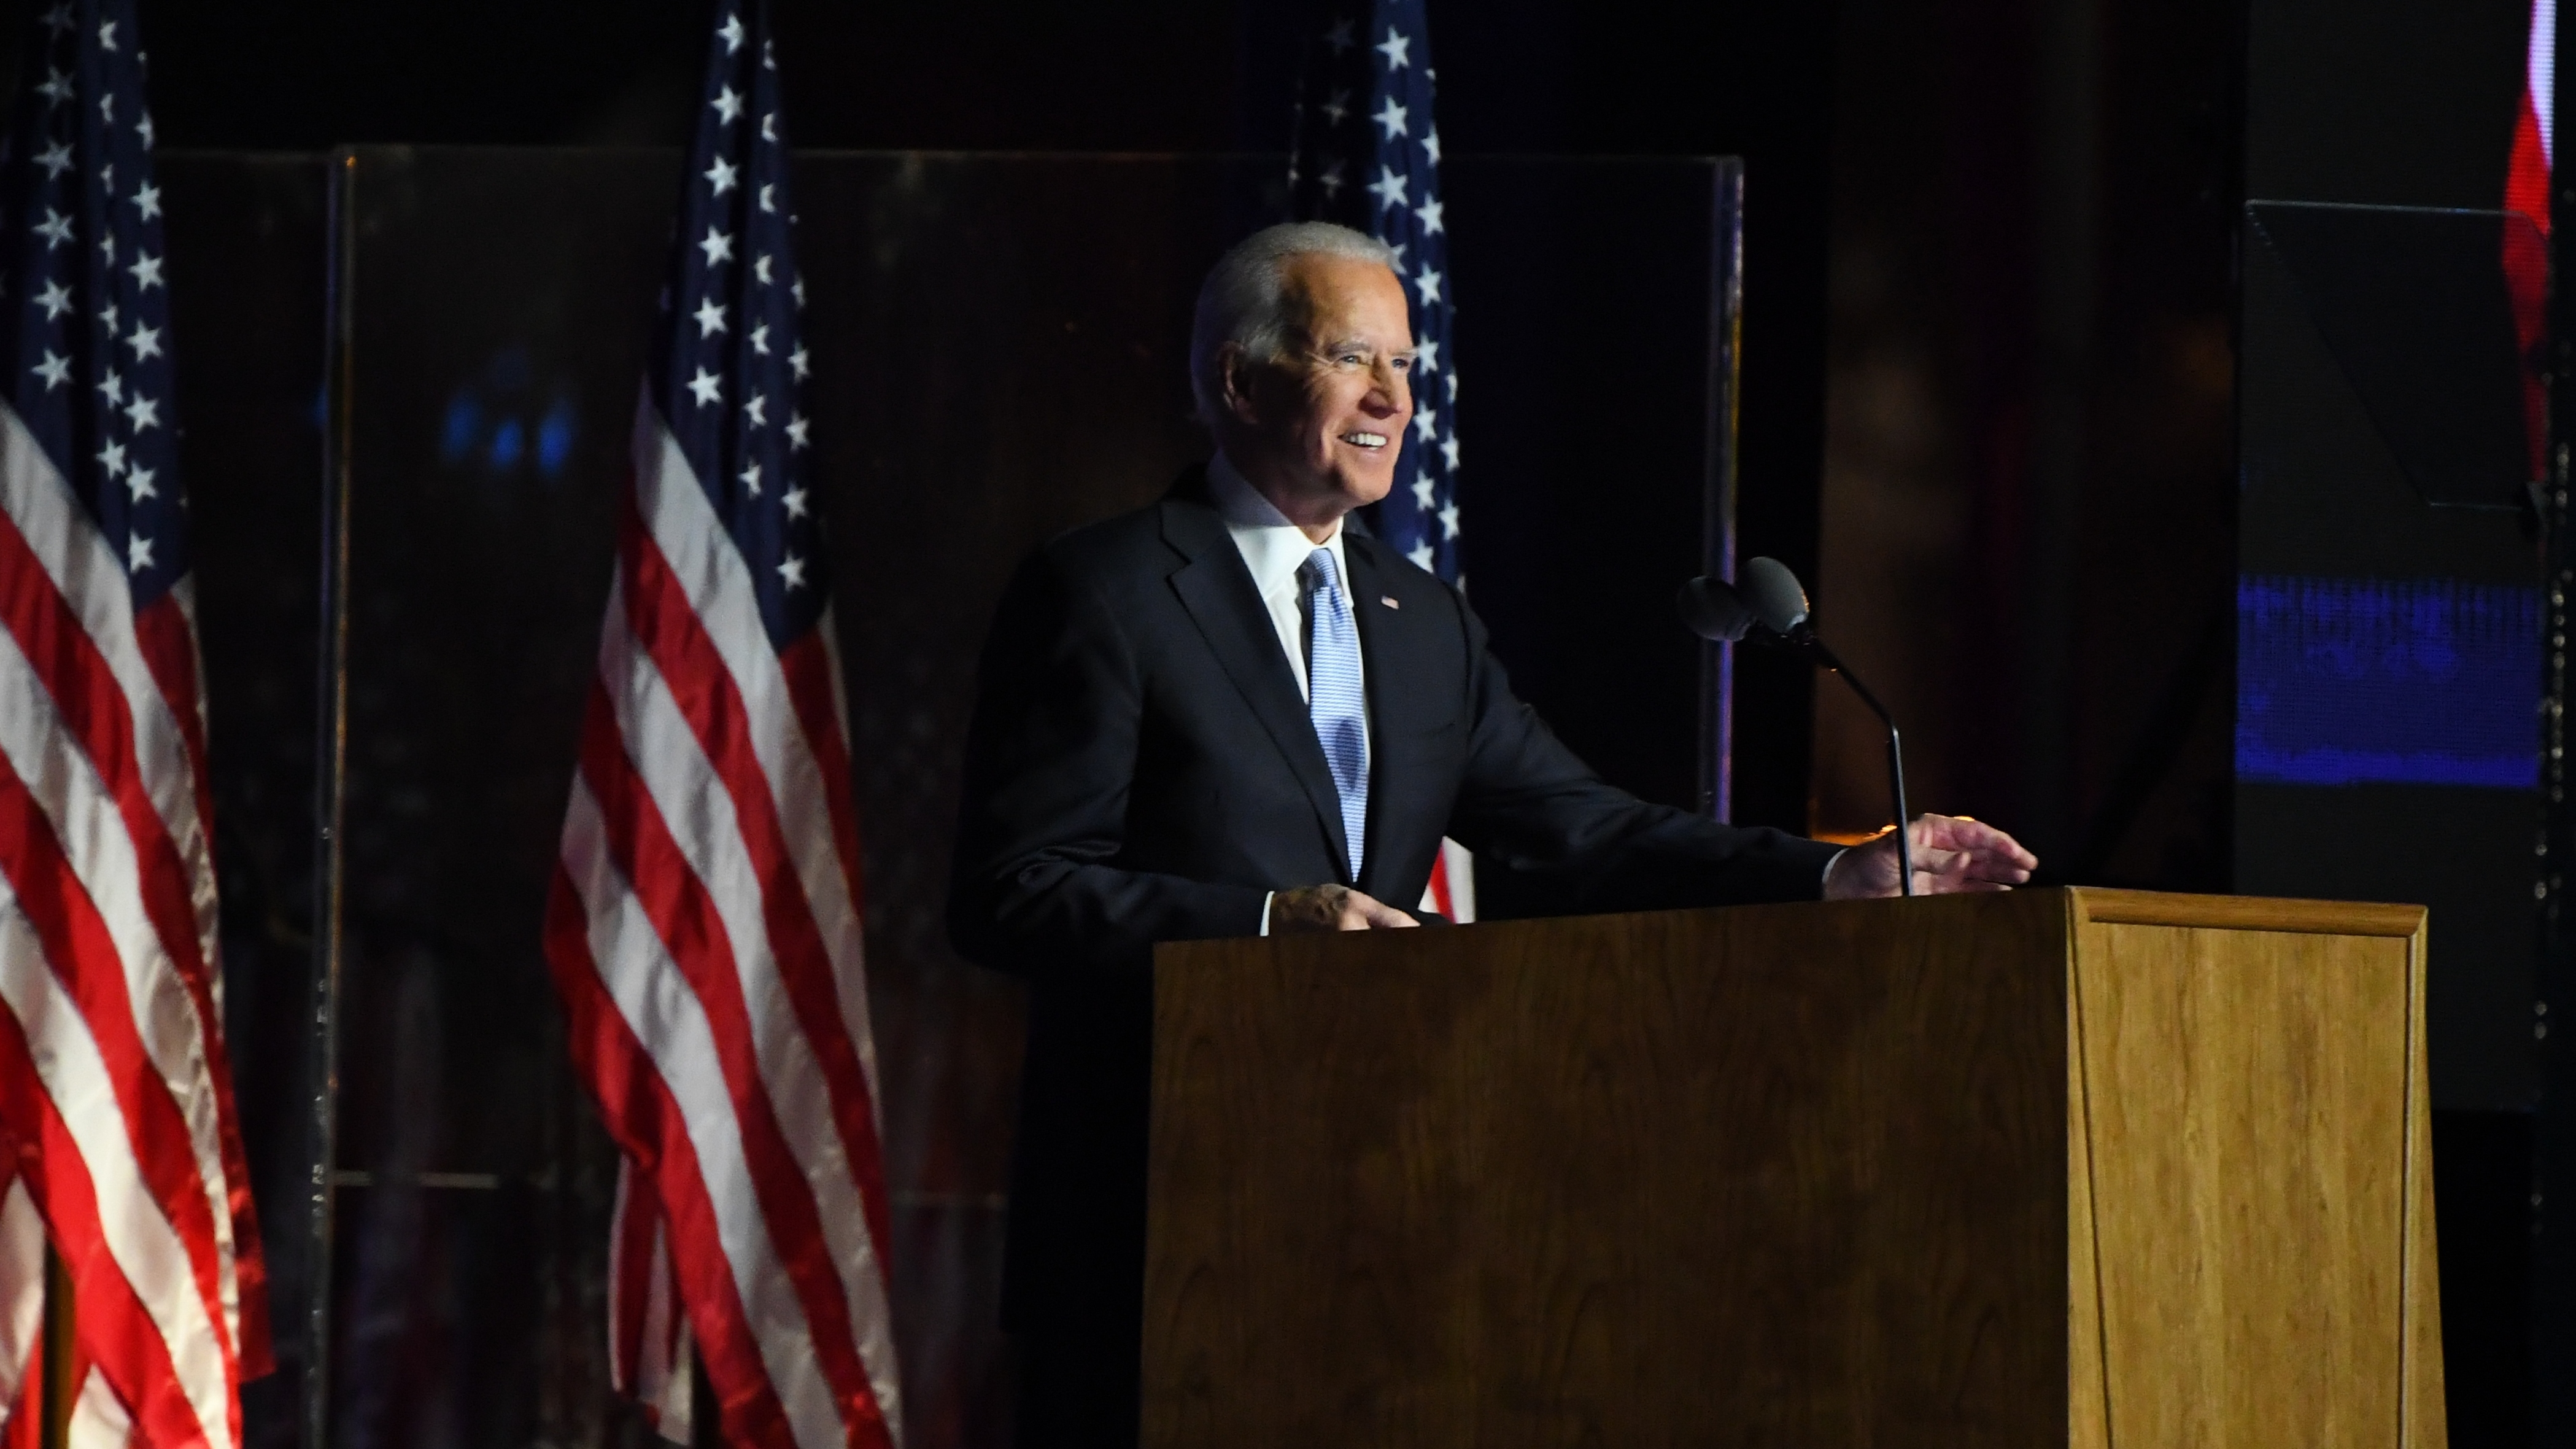 President-elect Joe Biden speaks during an election event in Wilmington, Del., on Saturday evening.